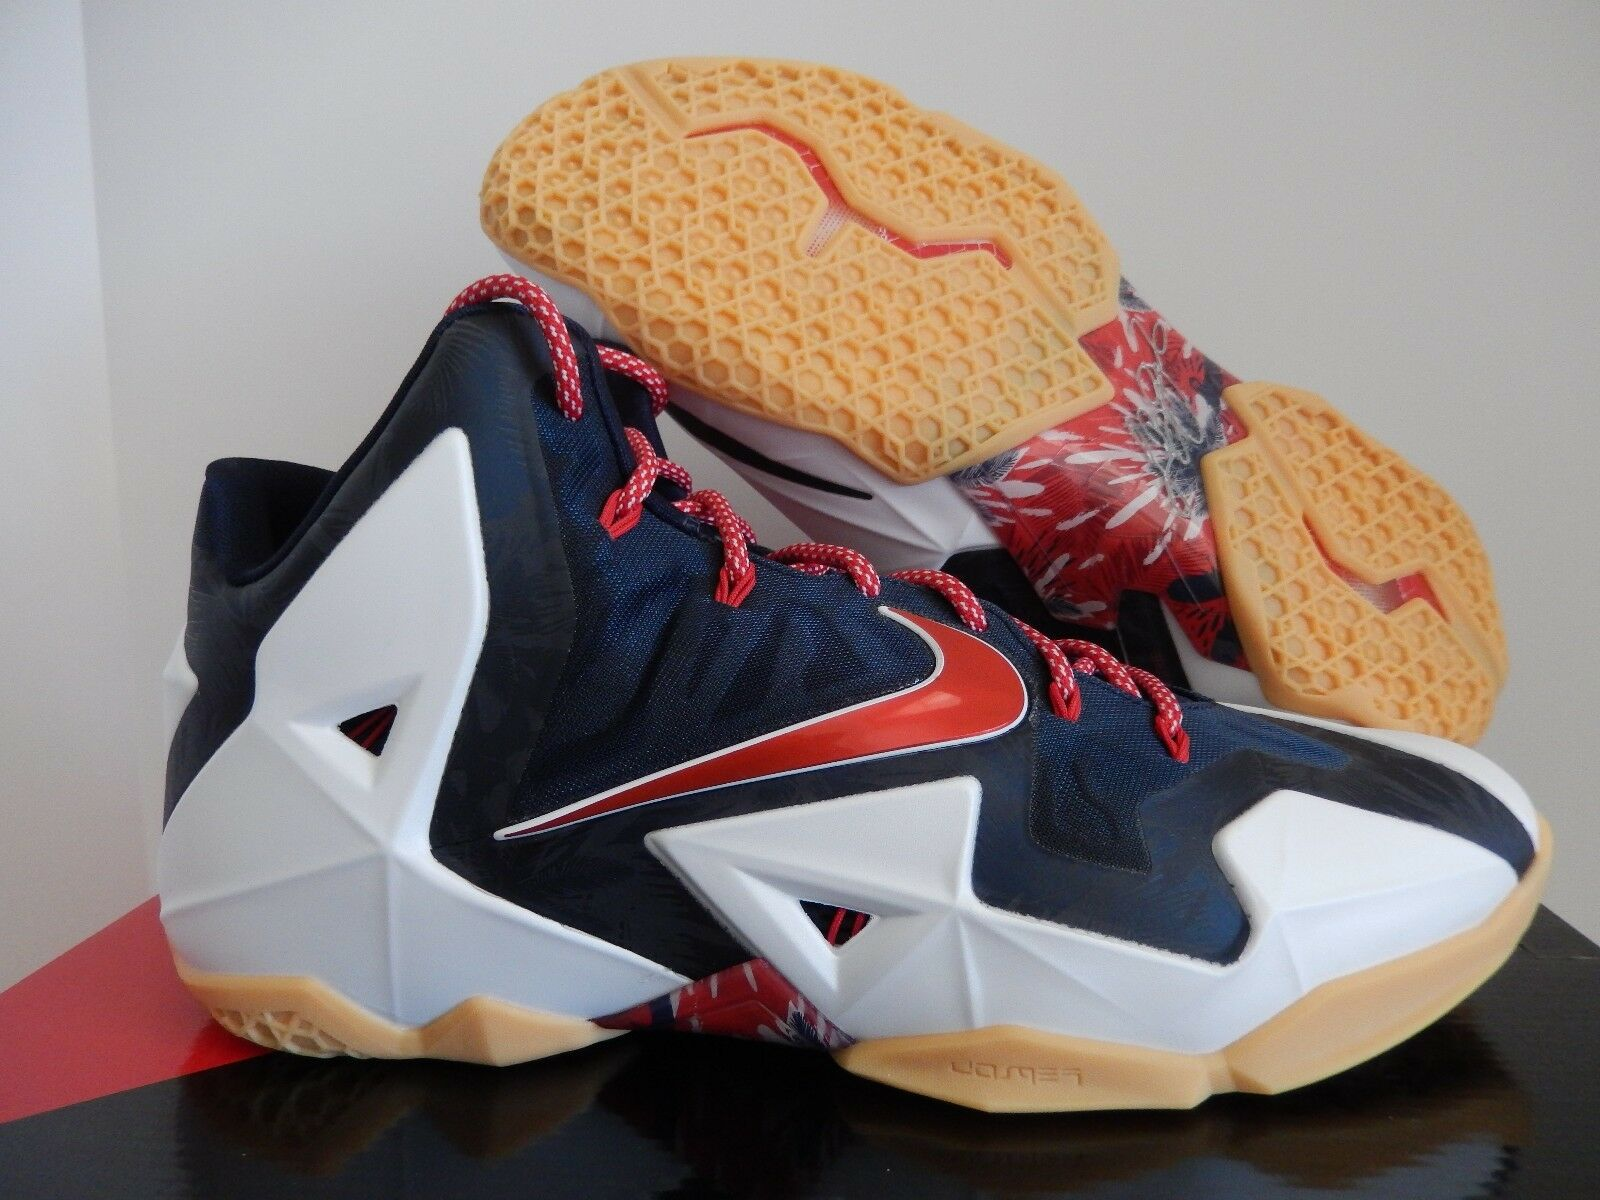 NIKE LEBRON XI 11 USA WHITE-UNIVERSITY RED-OBSIDIAN NAVY blueE blueE blueE SZ 11 [616175-164] 37c7c7